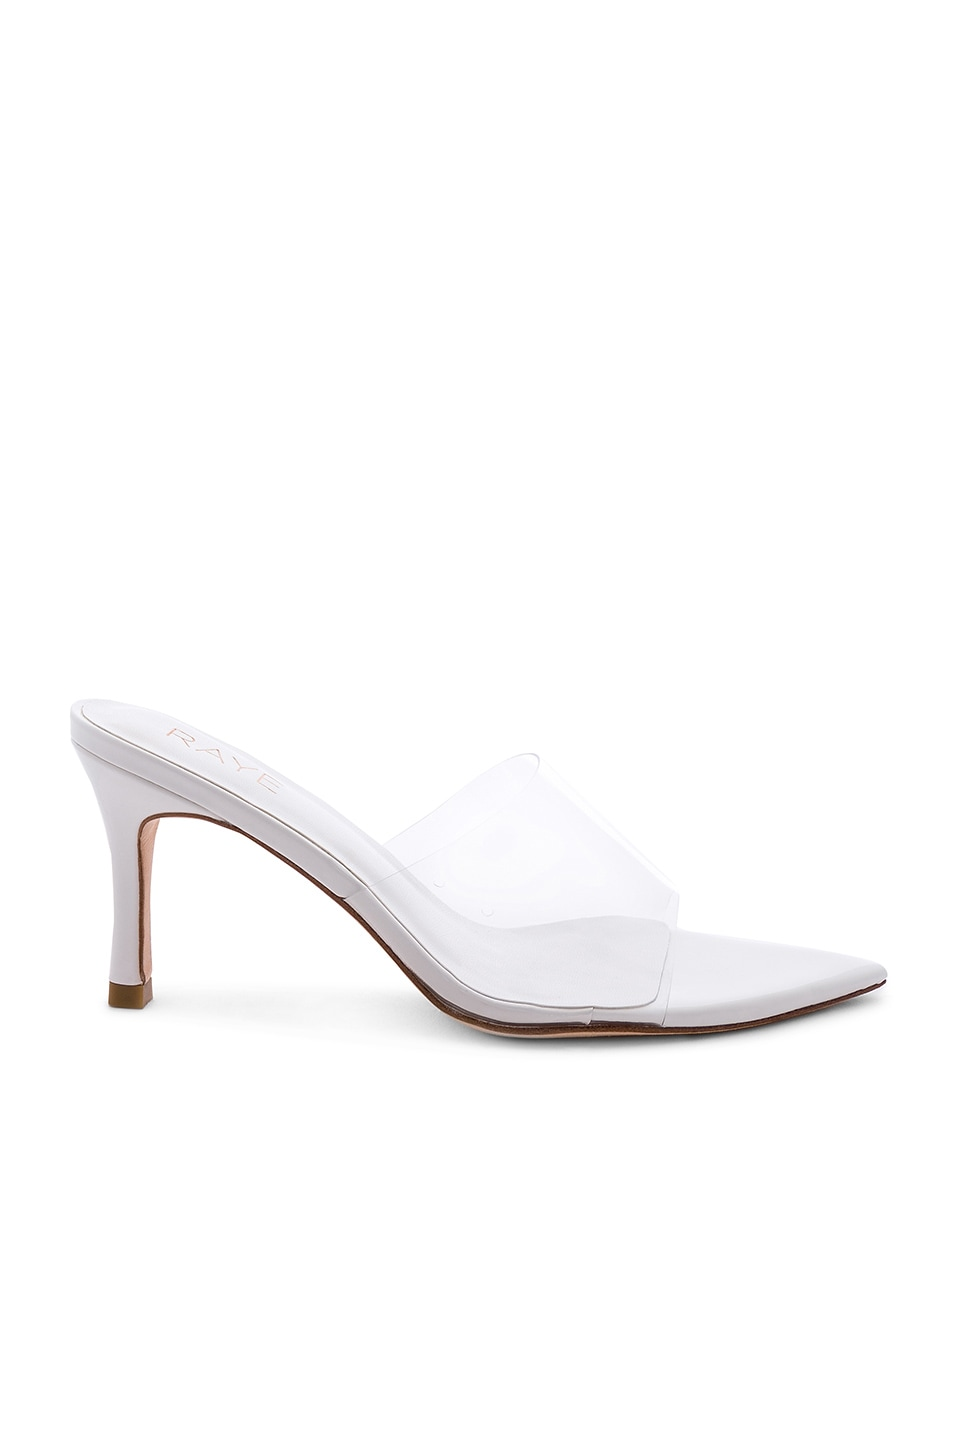 RAYE Evan Heel in White